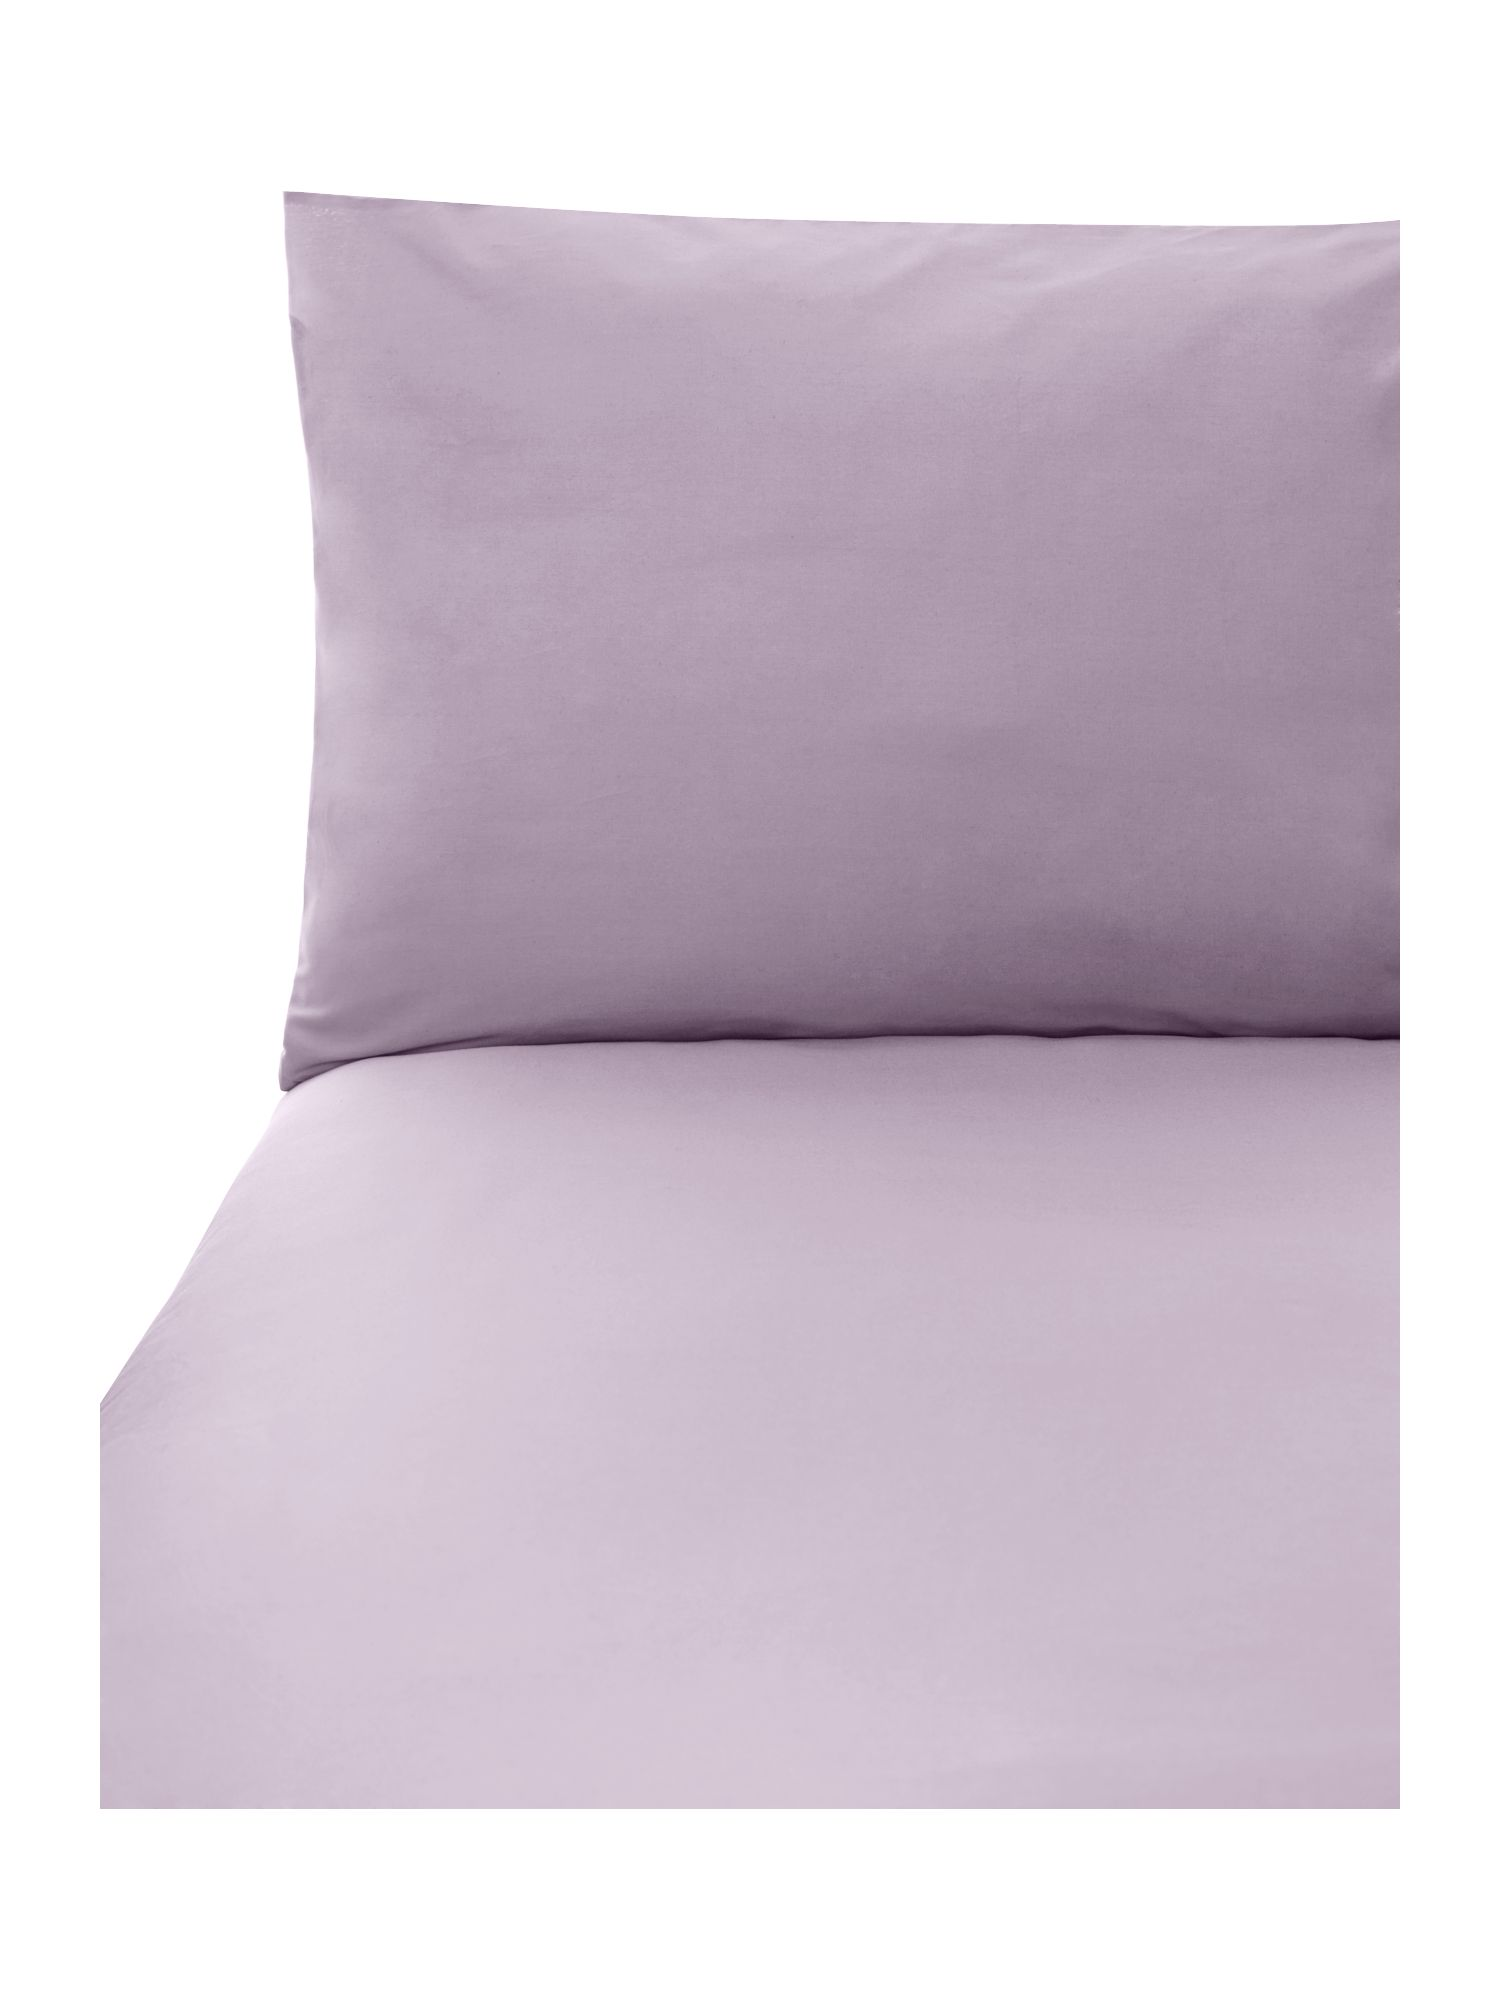 Lilac 100% cotton double flat sheet